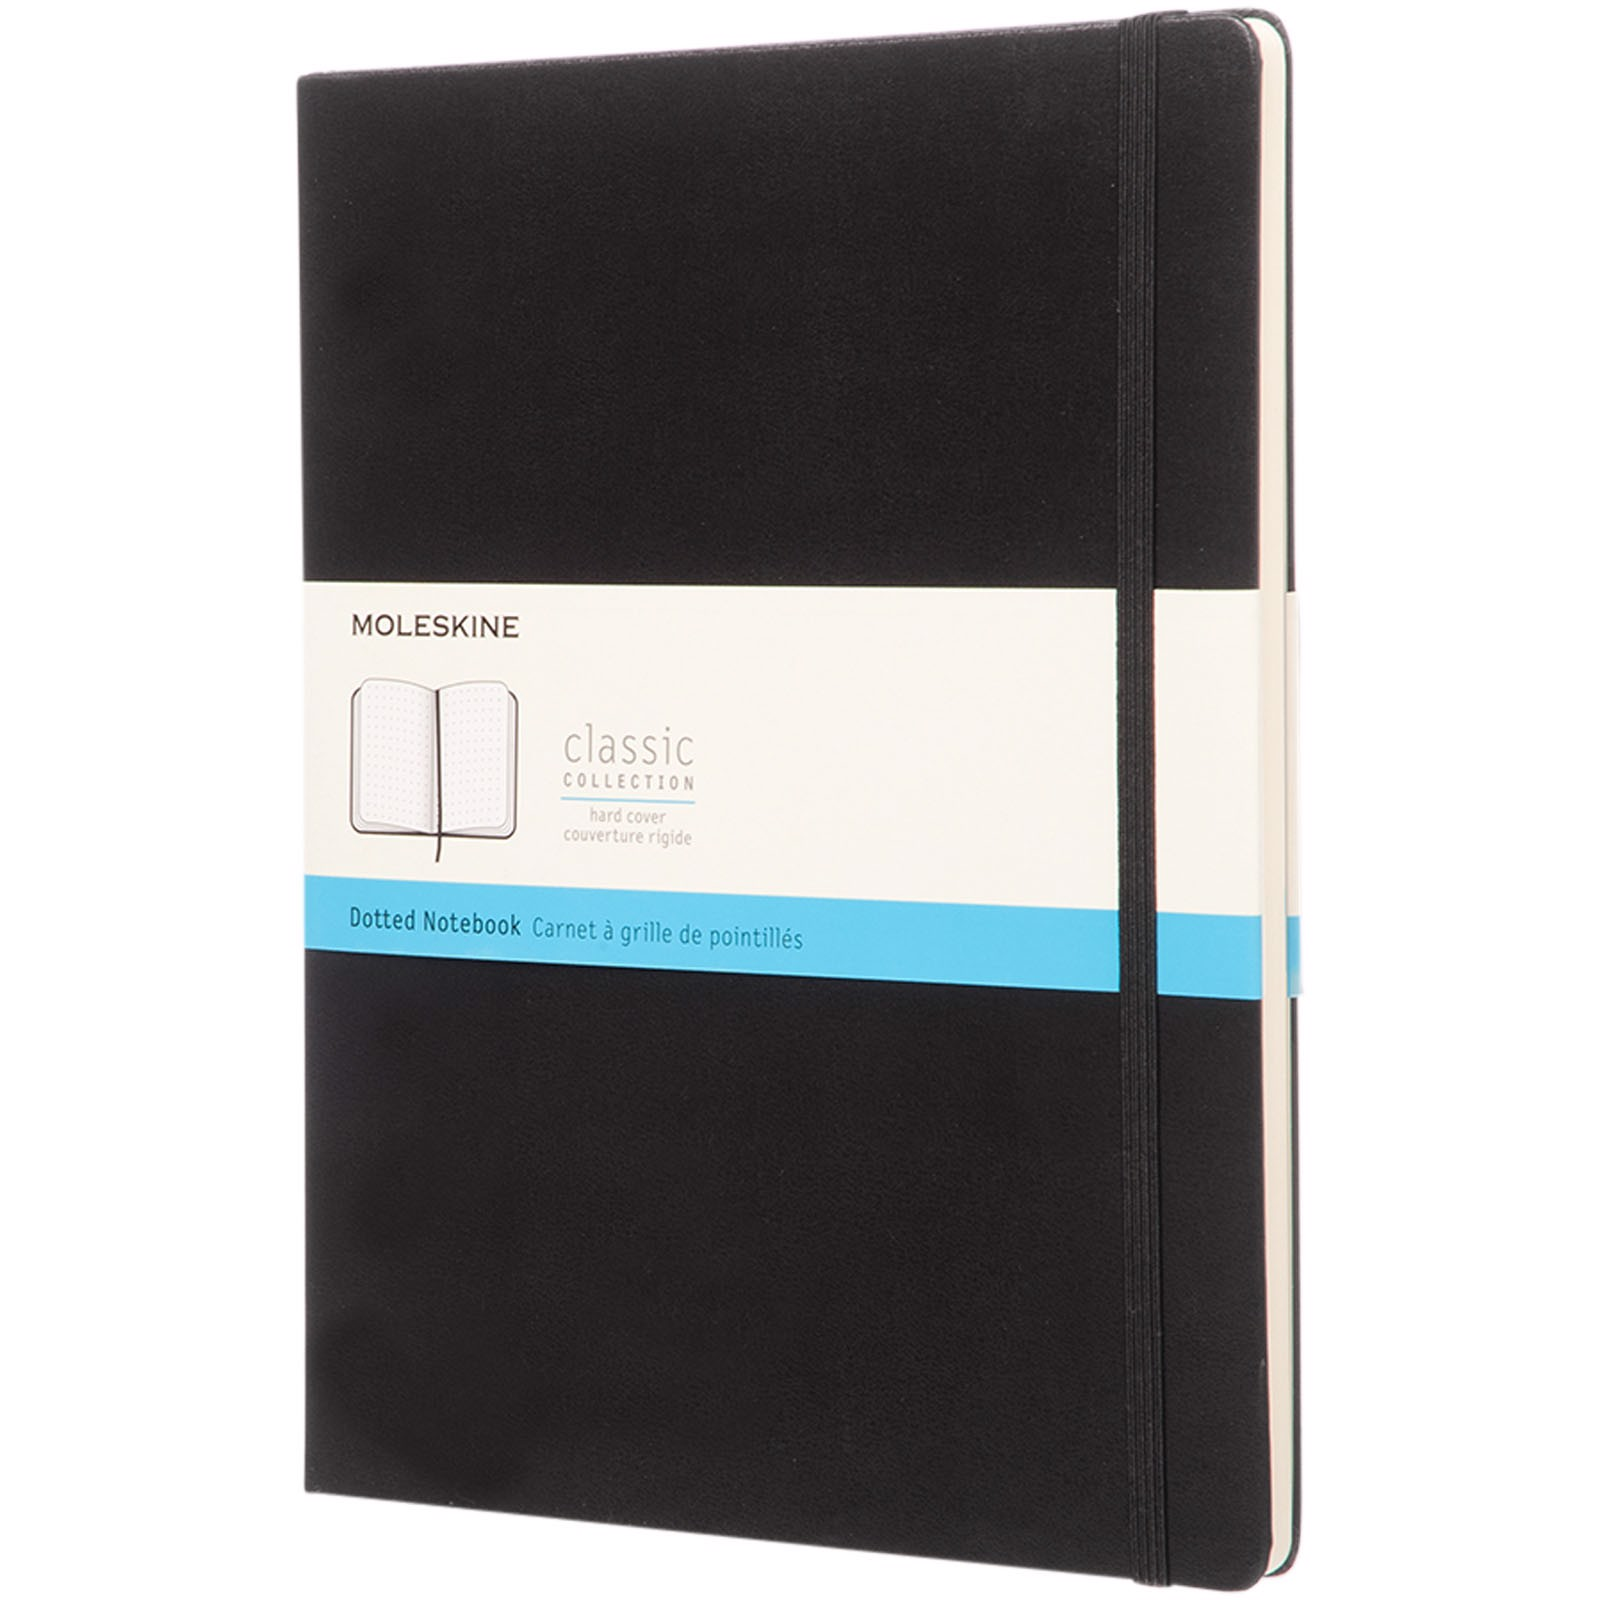 Classic XL hard cover notebook - dotted - Solid black